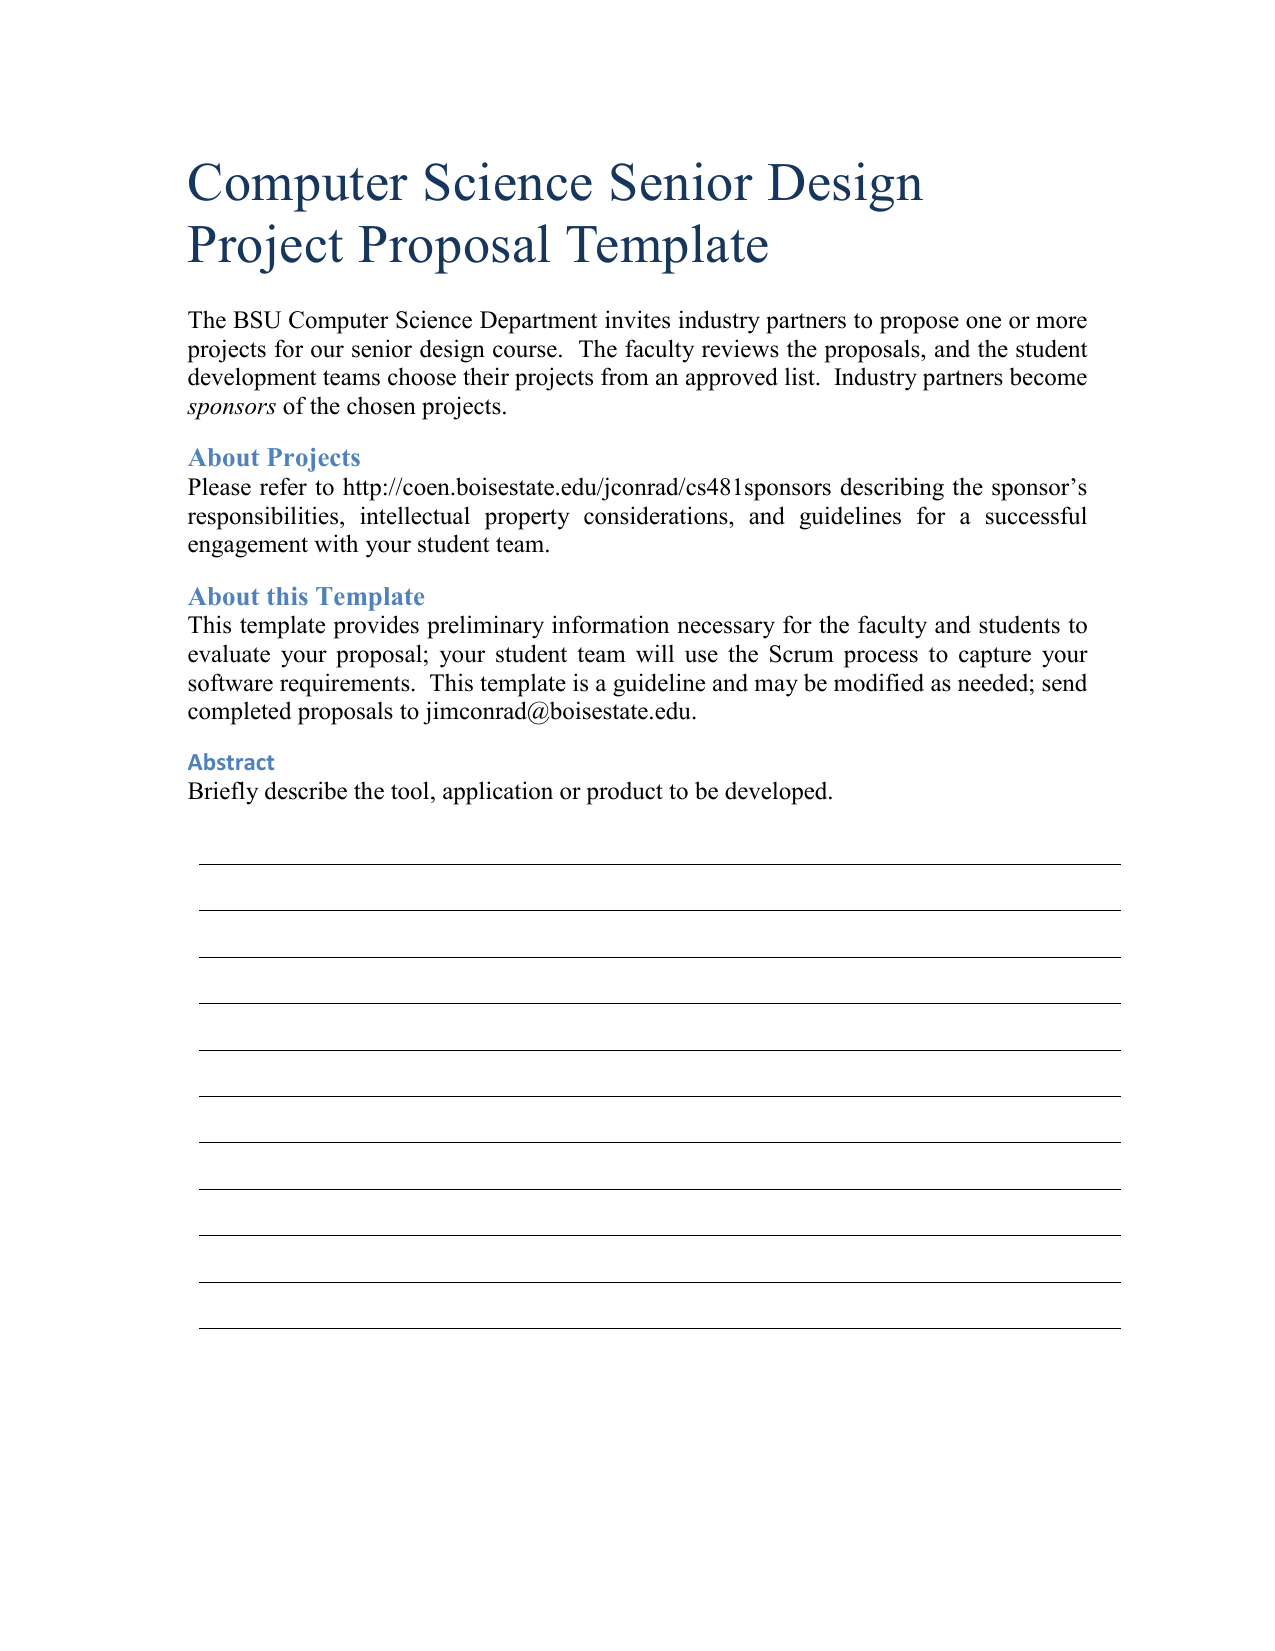 Computer Science Senior Design Project Proposal Template